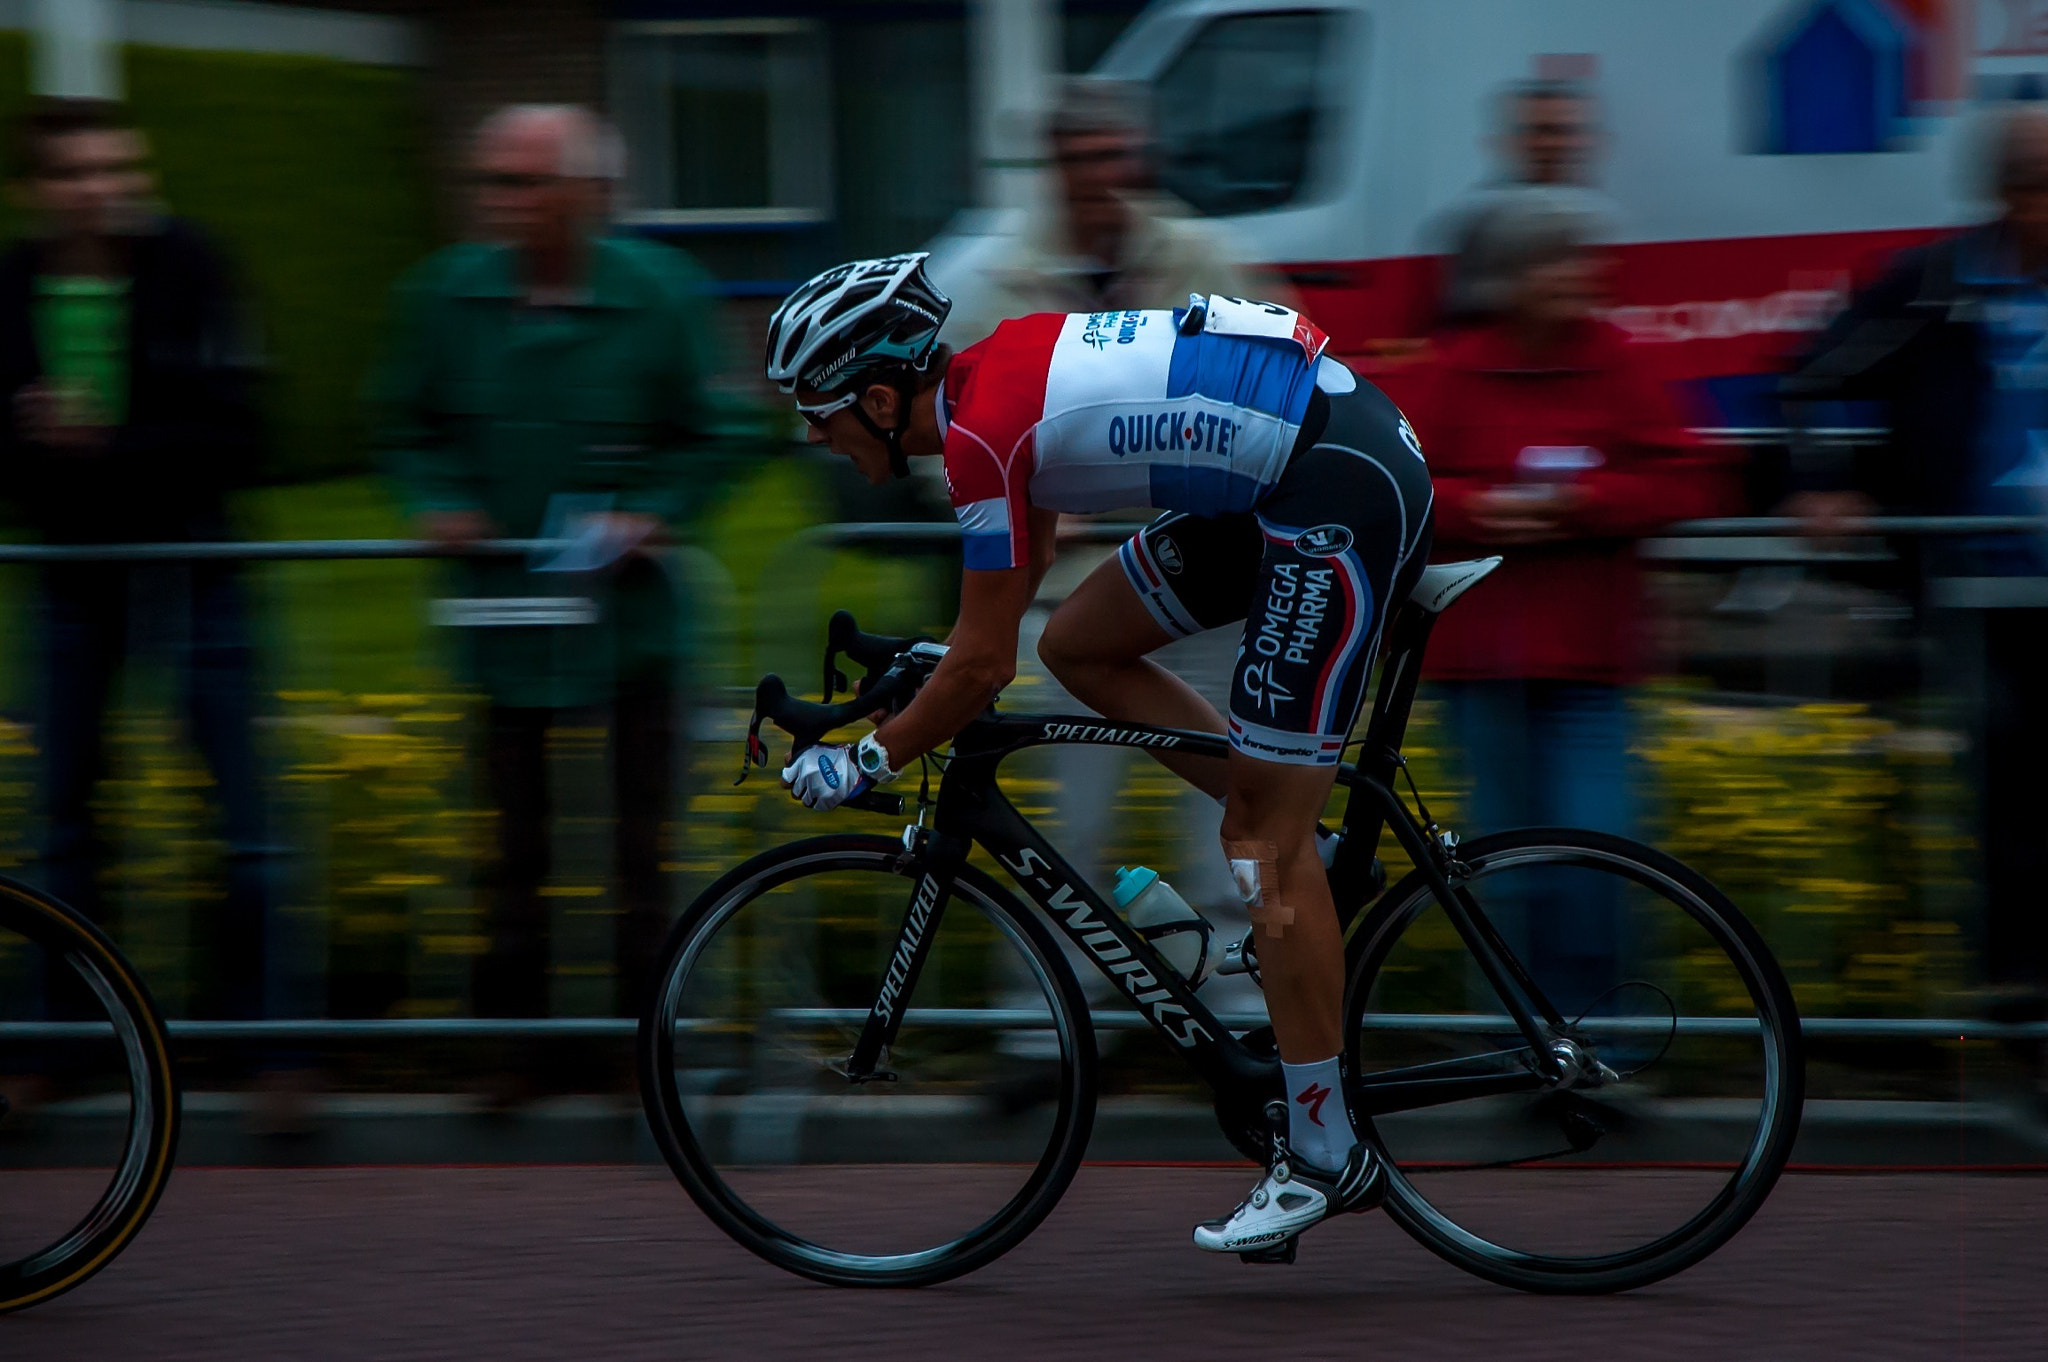 Photograph Niki Terpstra by Aldert Cuperus on 500px